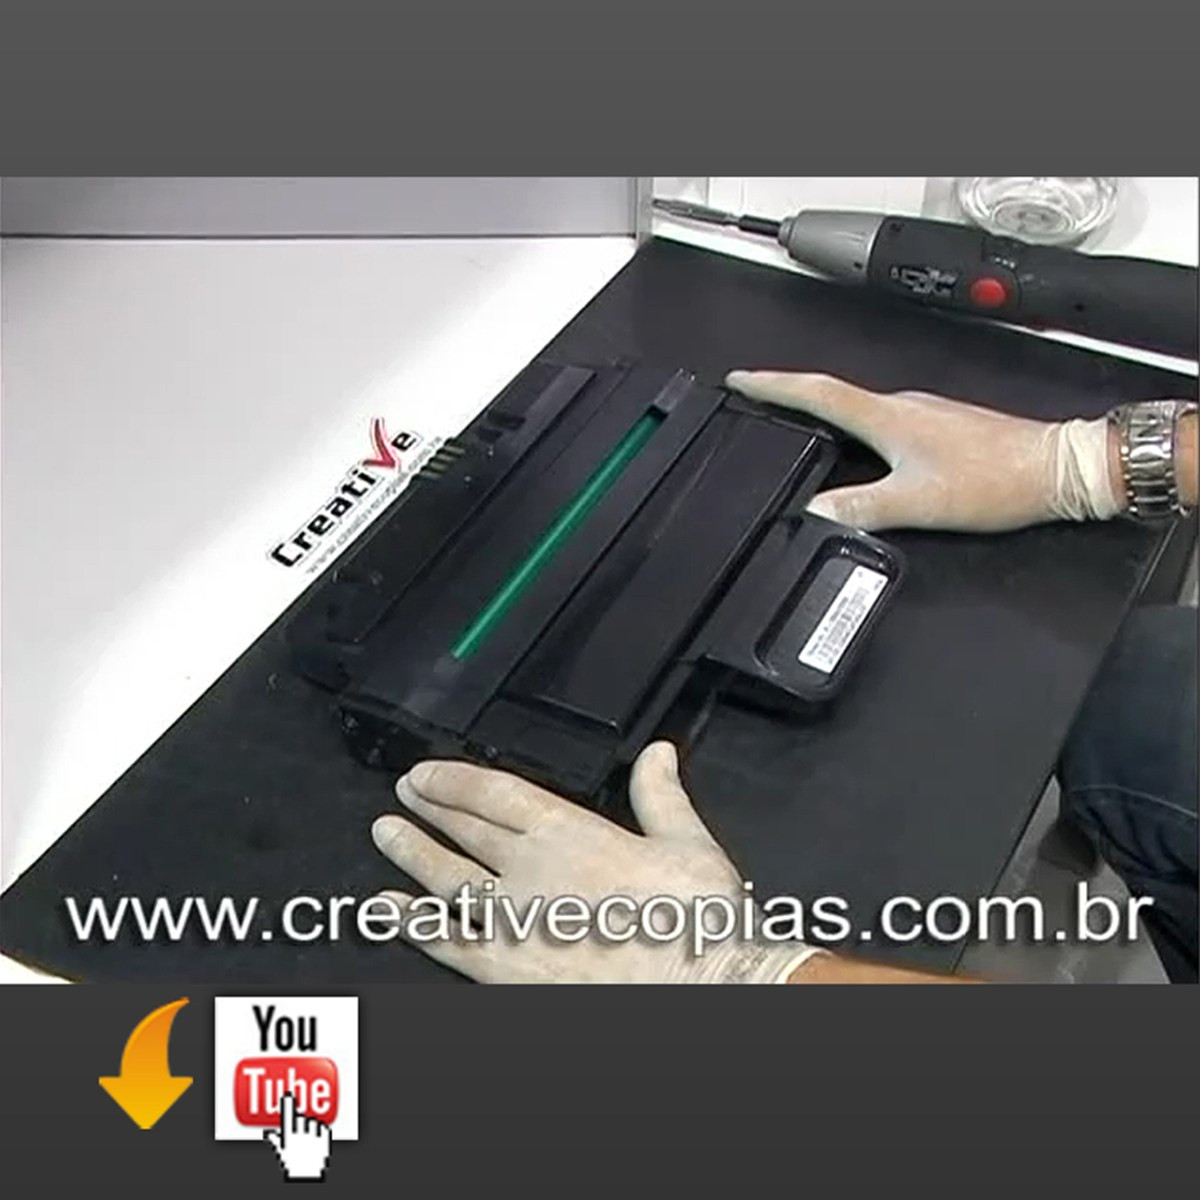 Video Aula Recarga Toner Samsung ML-2850, ML-2850D, ML-2851, ML-2851ND